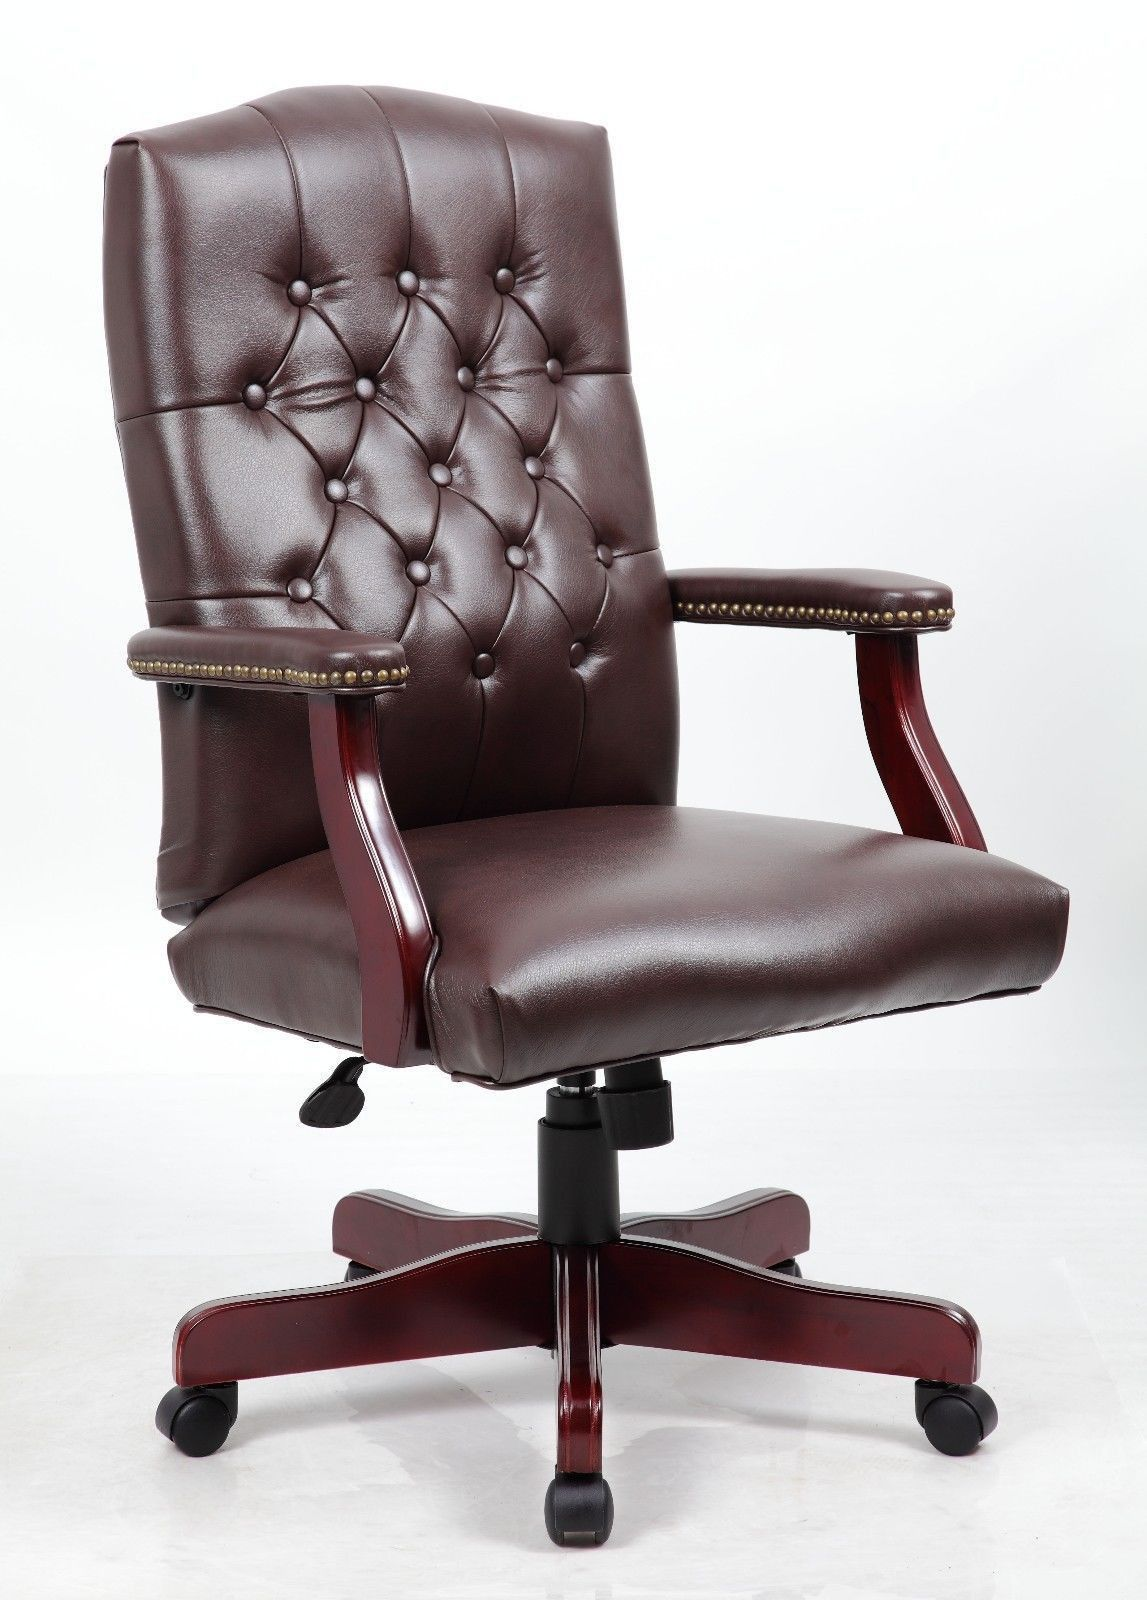 Mid Back Traditional Tufted Leather Executive Office Chair Brown By Timeoffice Brown Leather Office Chair Executive Office Chairs Leather Office Chair